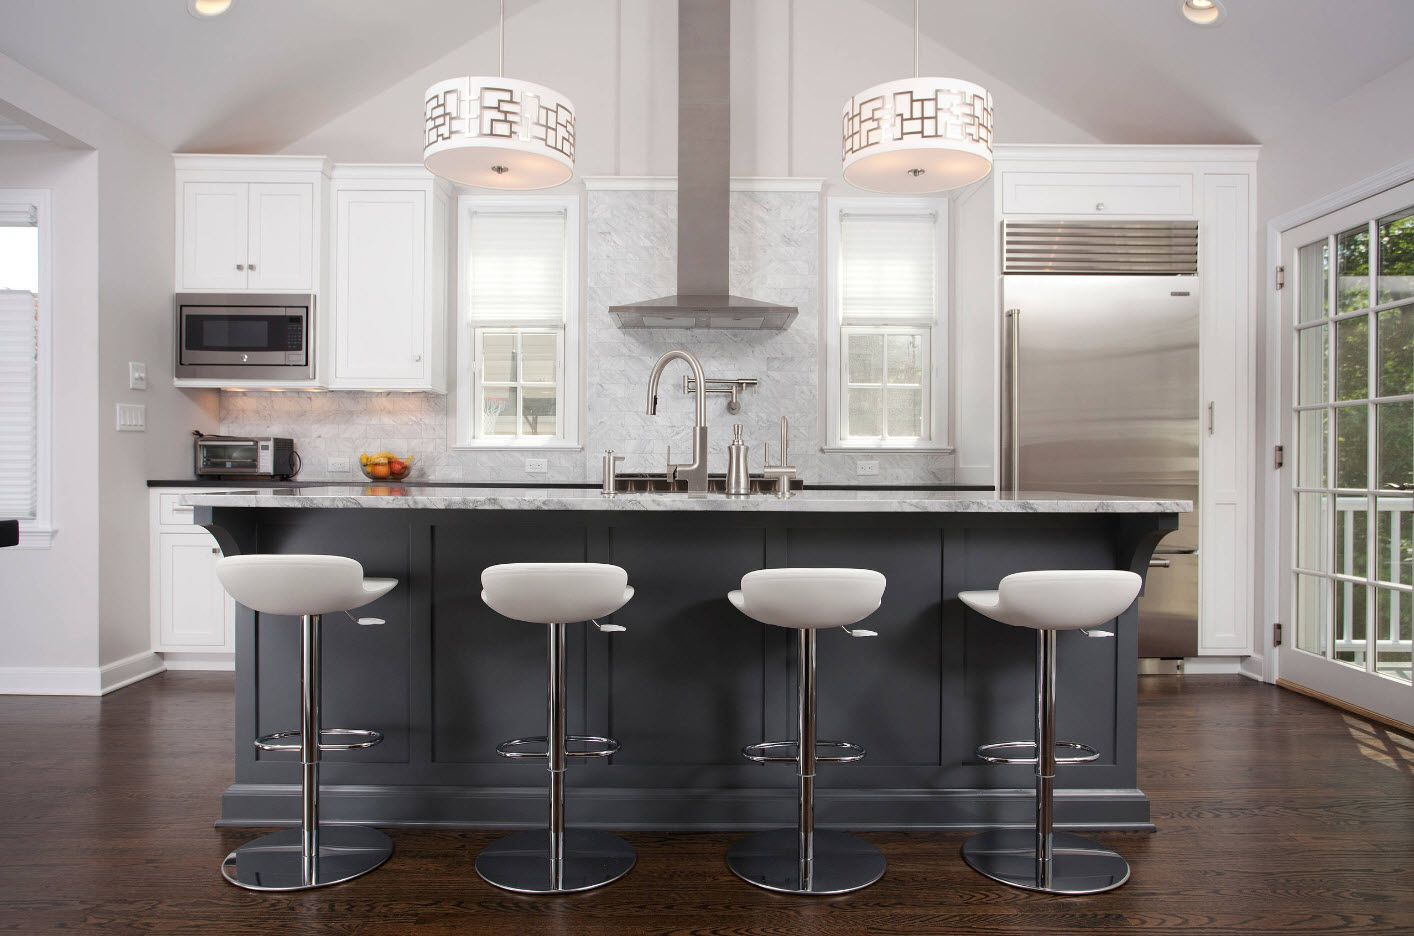 Elongated kitchen island with set of chairs